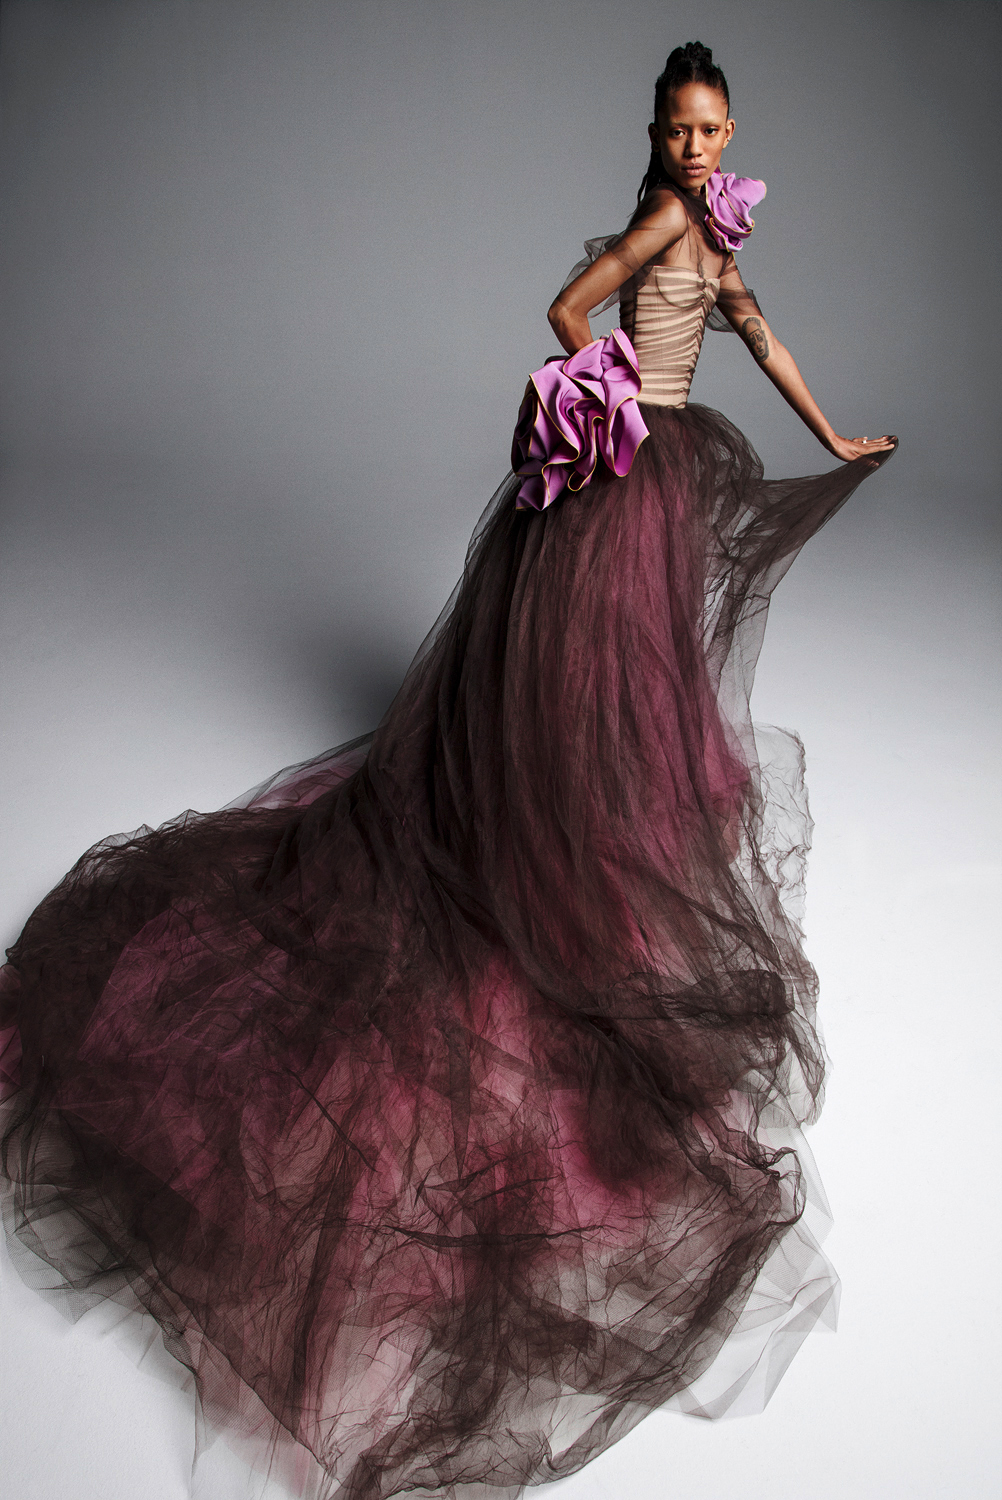 vera wang wedding dress spring 2019 purple burgandy tulle strapless ball gown